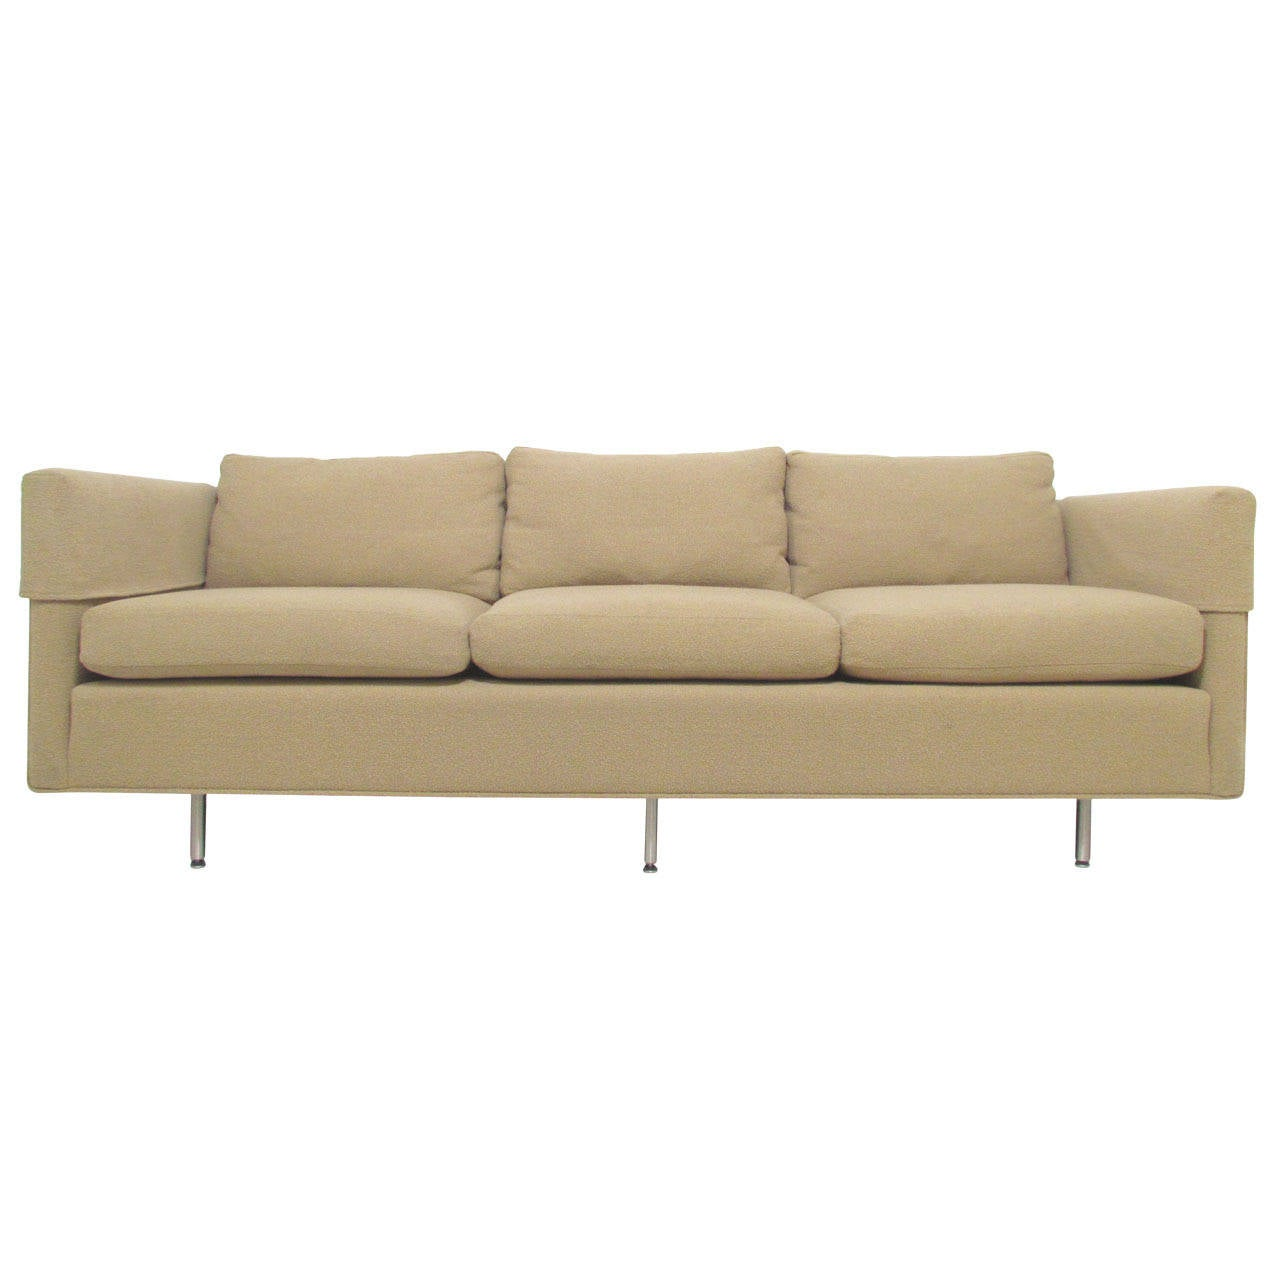 Tuxedo three seat quotcambridgequot sofa with down cushions by for Sectional sofa down cushions